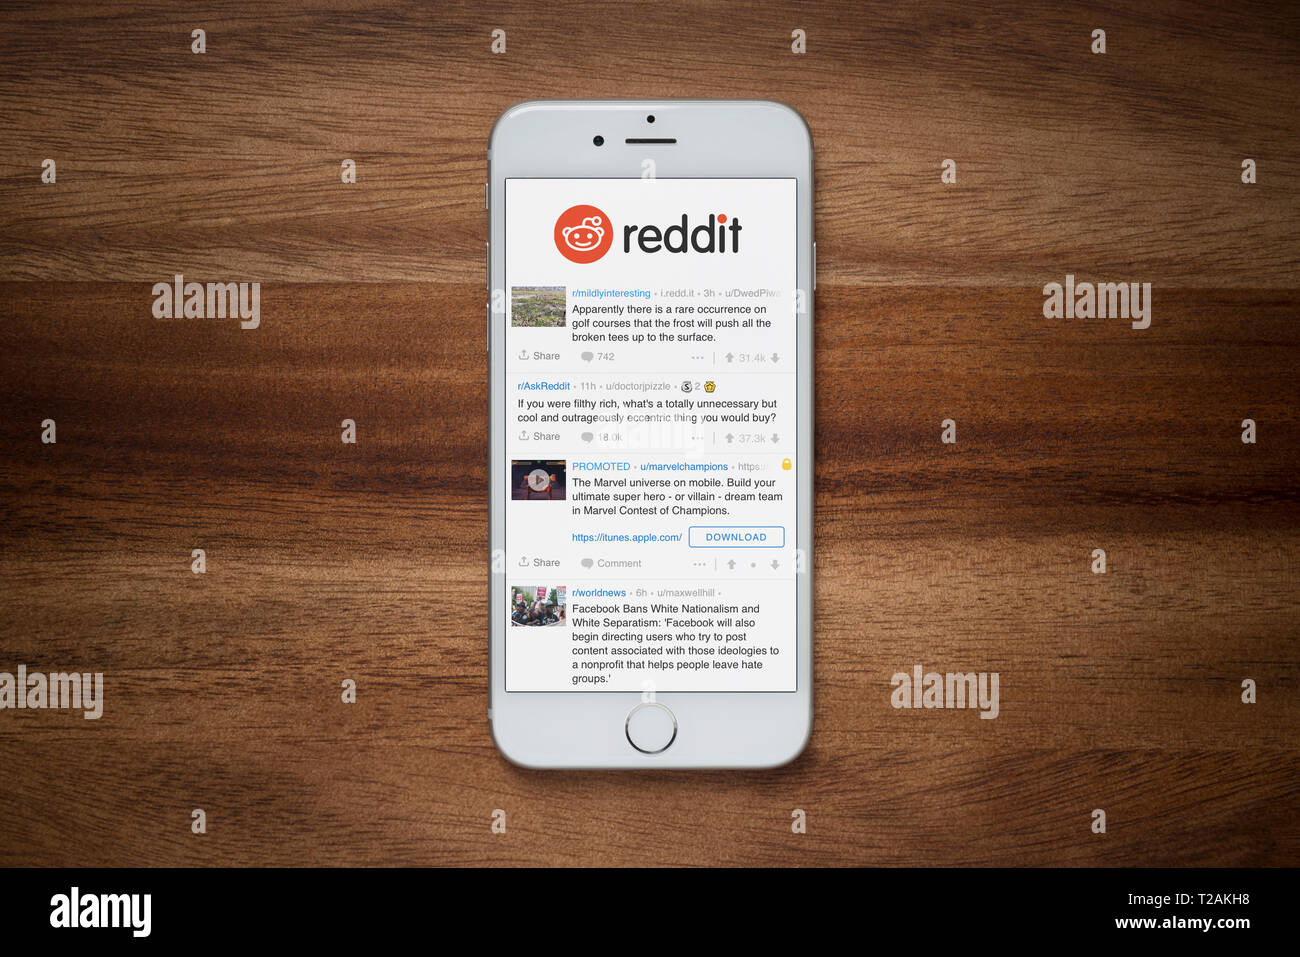 Reddit Stock Photos & Reddit Stock Images - Alamy